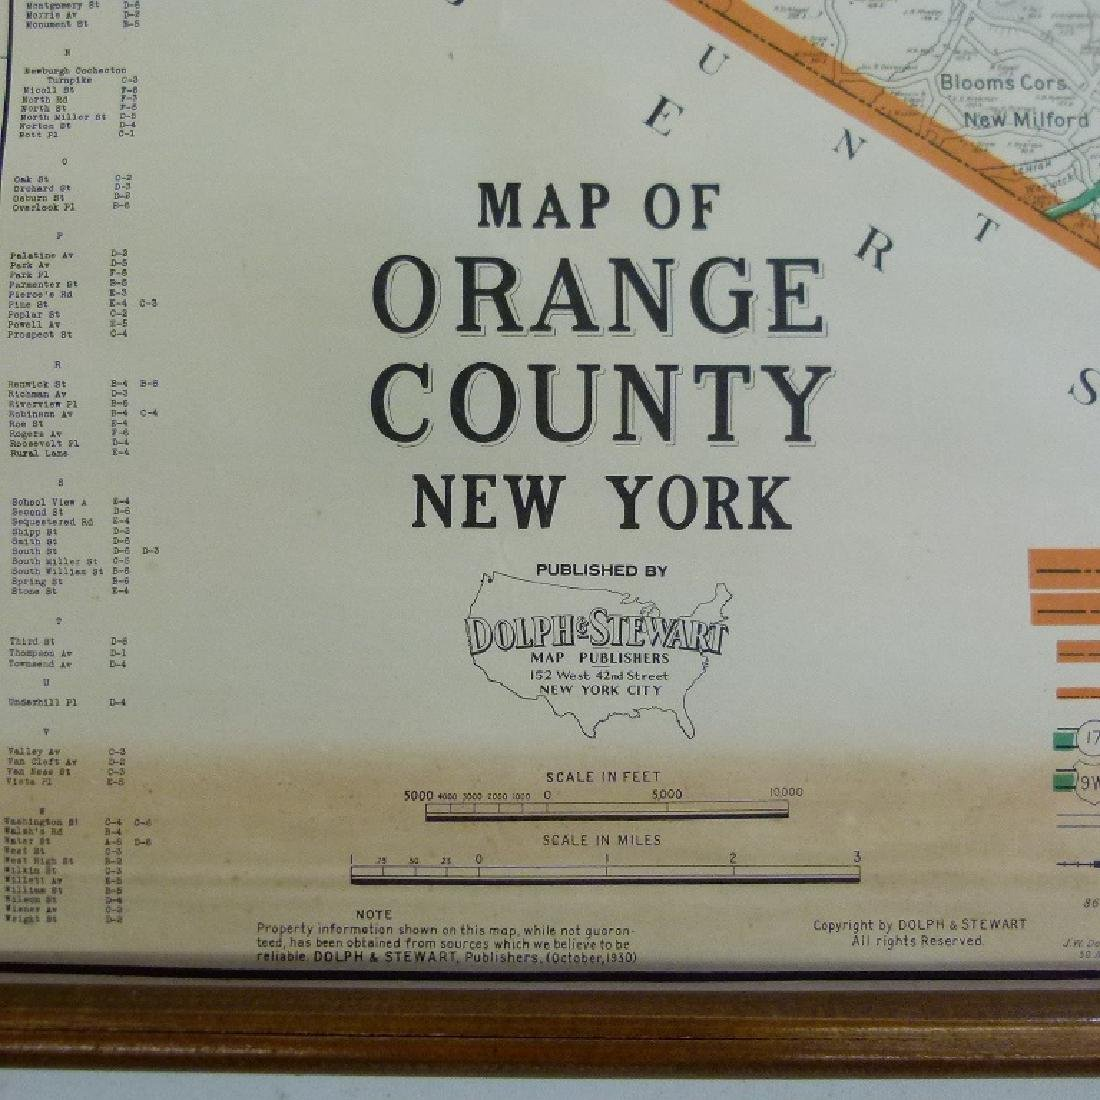 ORANGE COUNTY NEW YORK MAP 1930